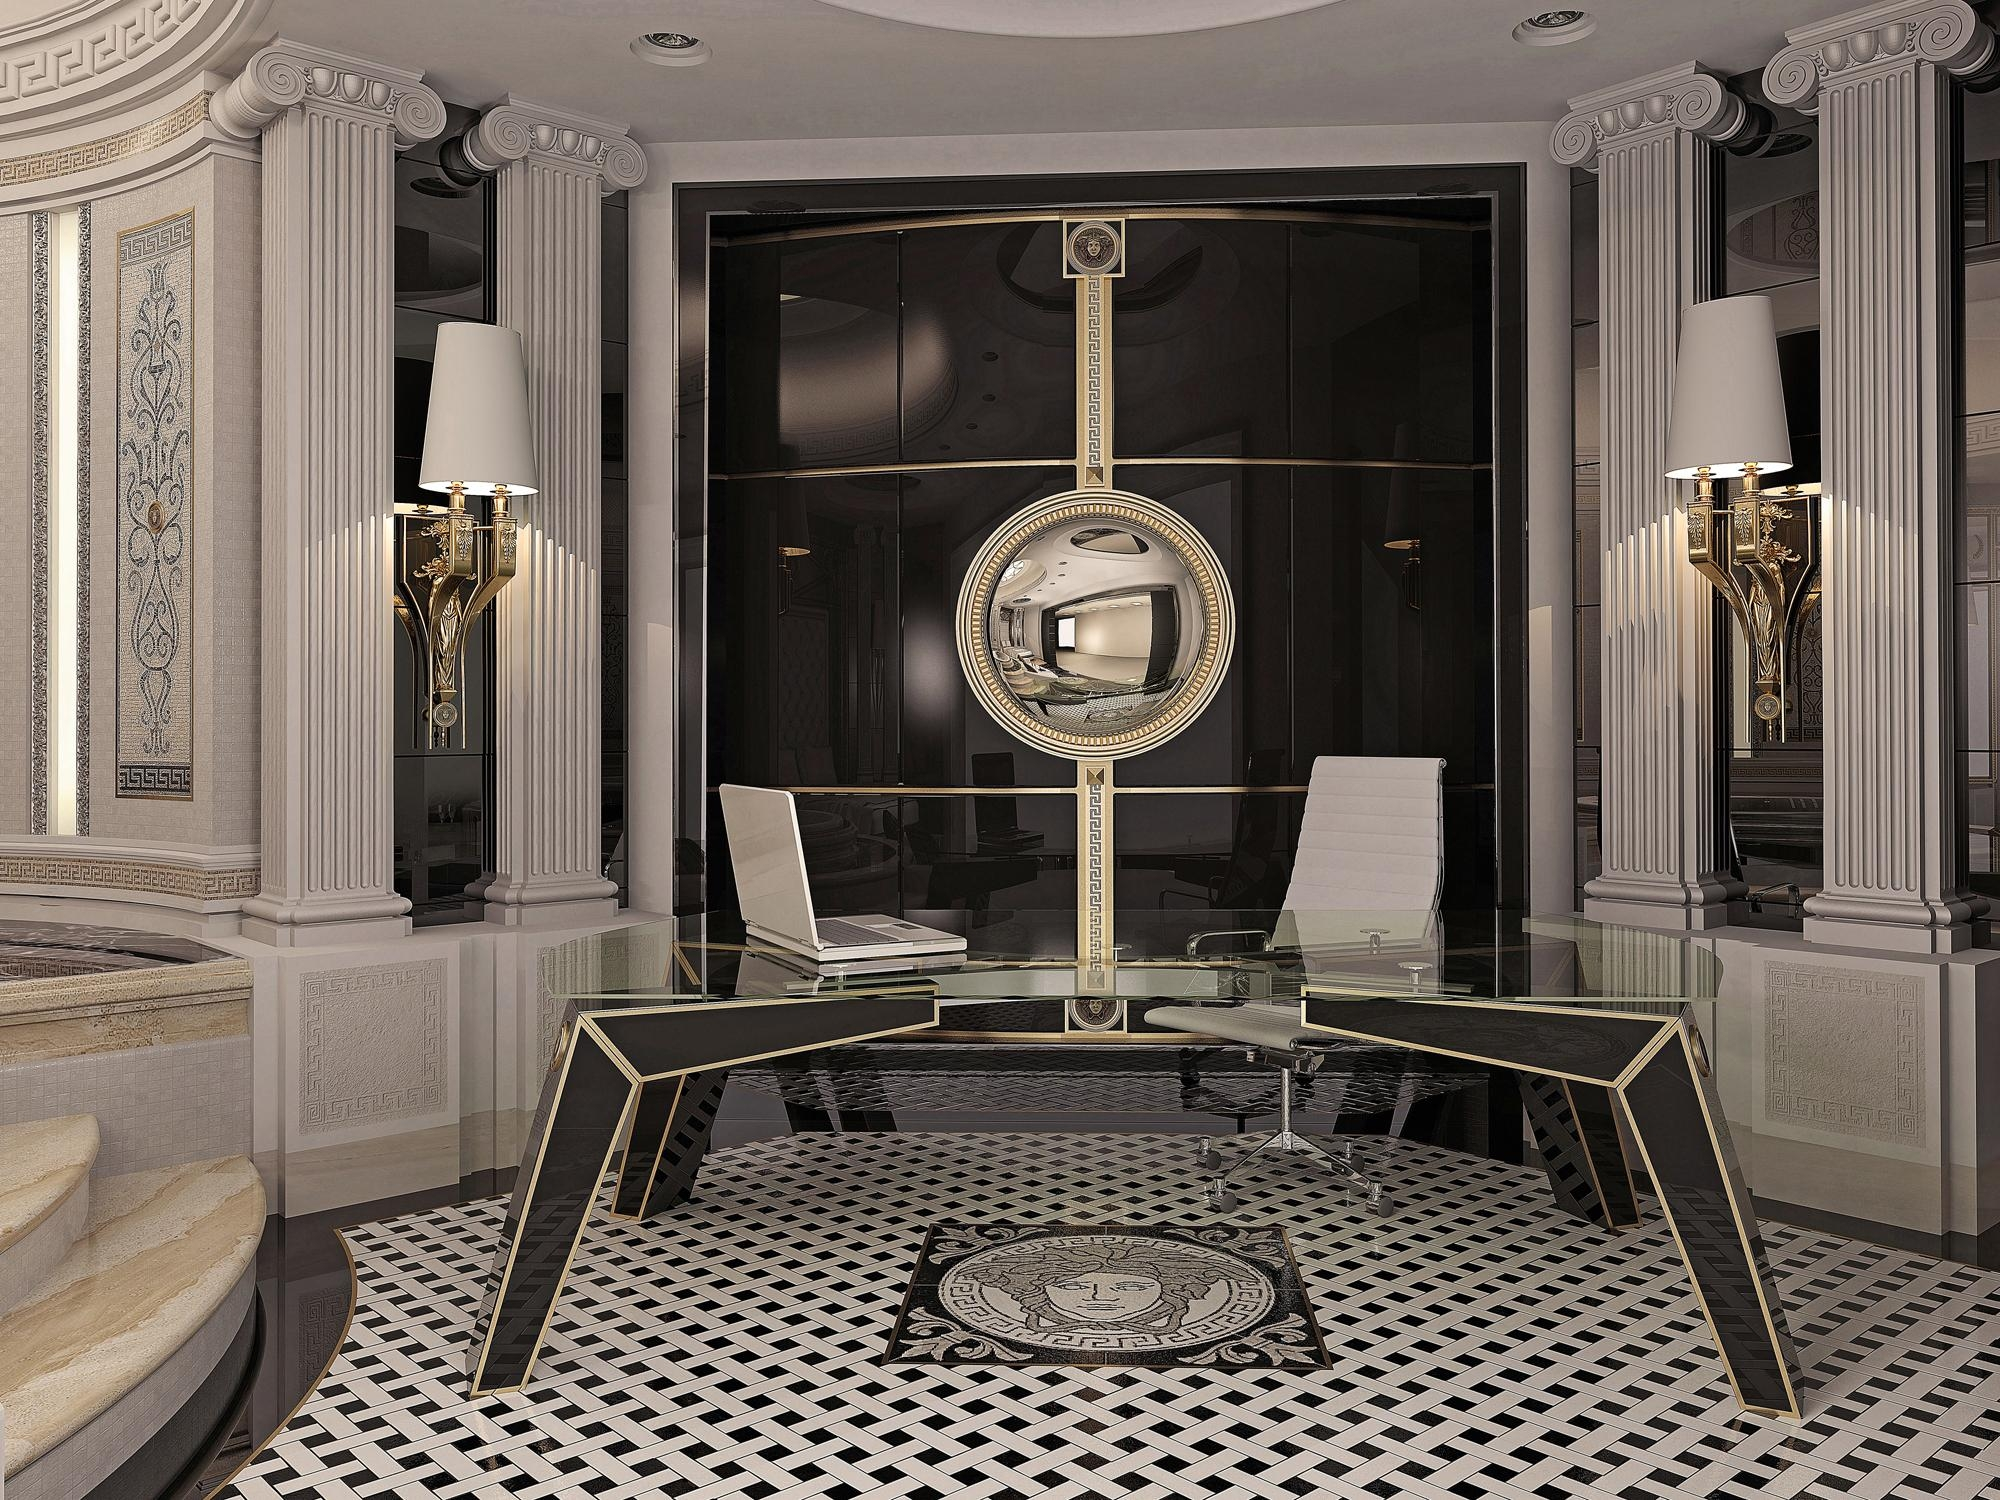 Interior And Art Files: Versace Home within Versace Wall Art